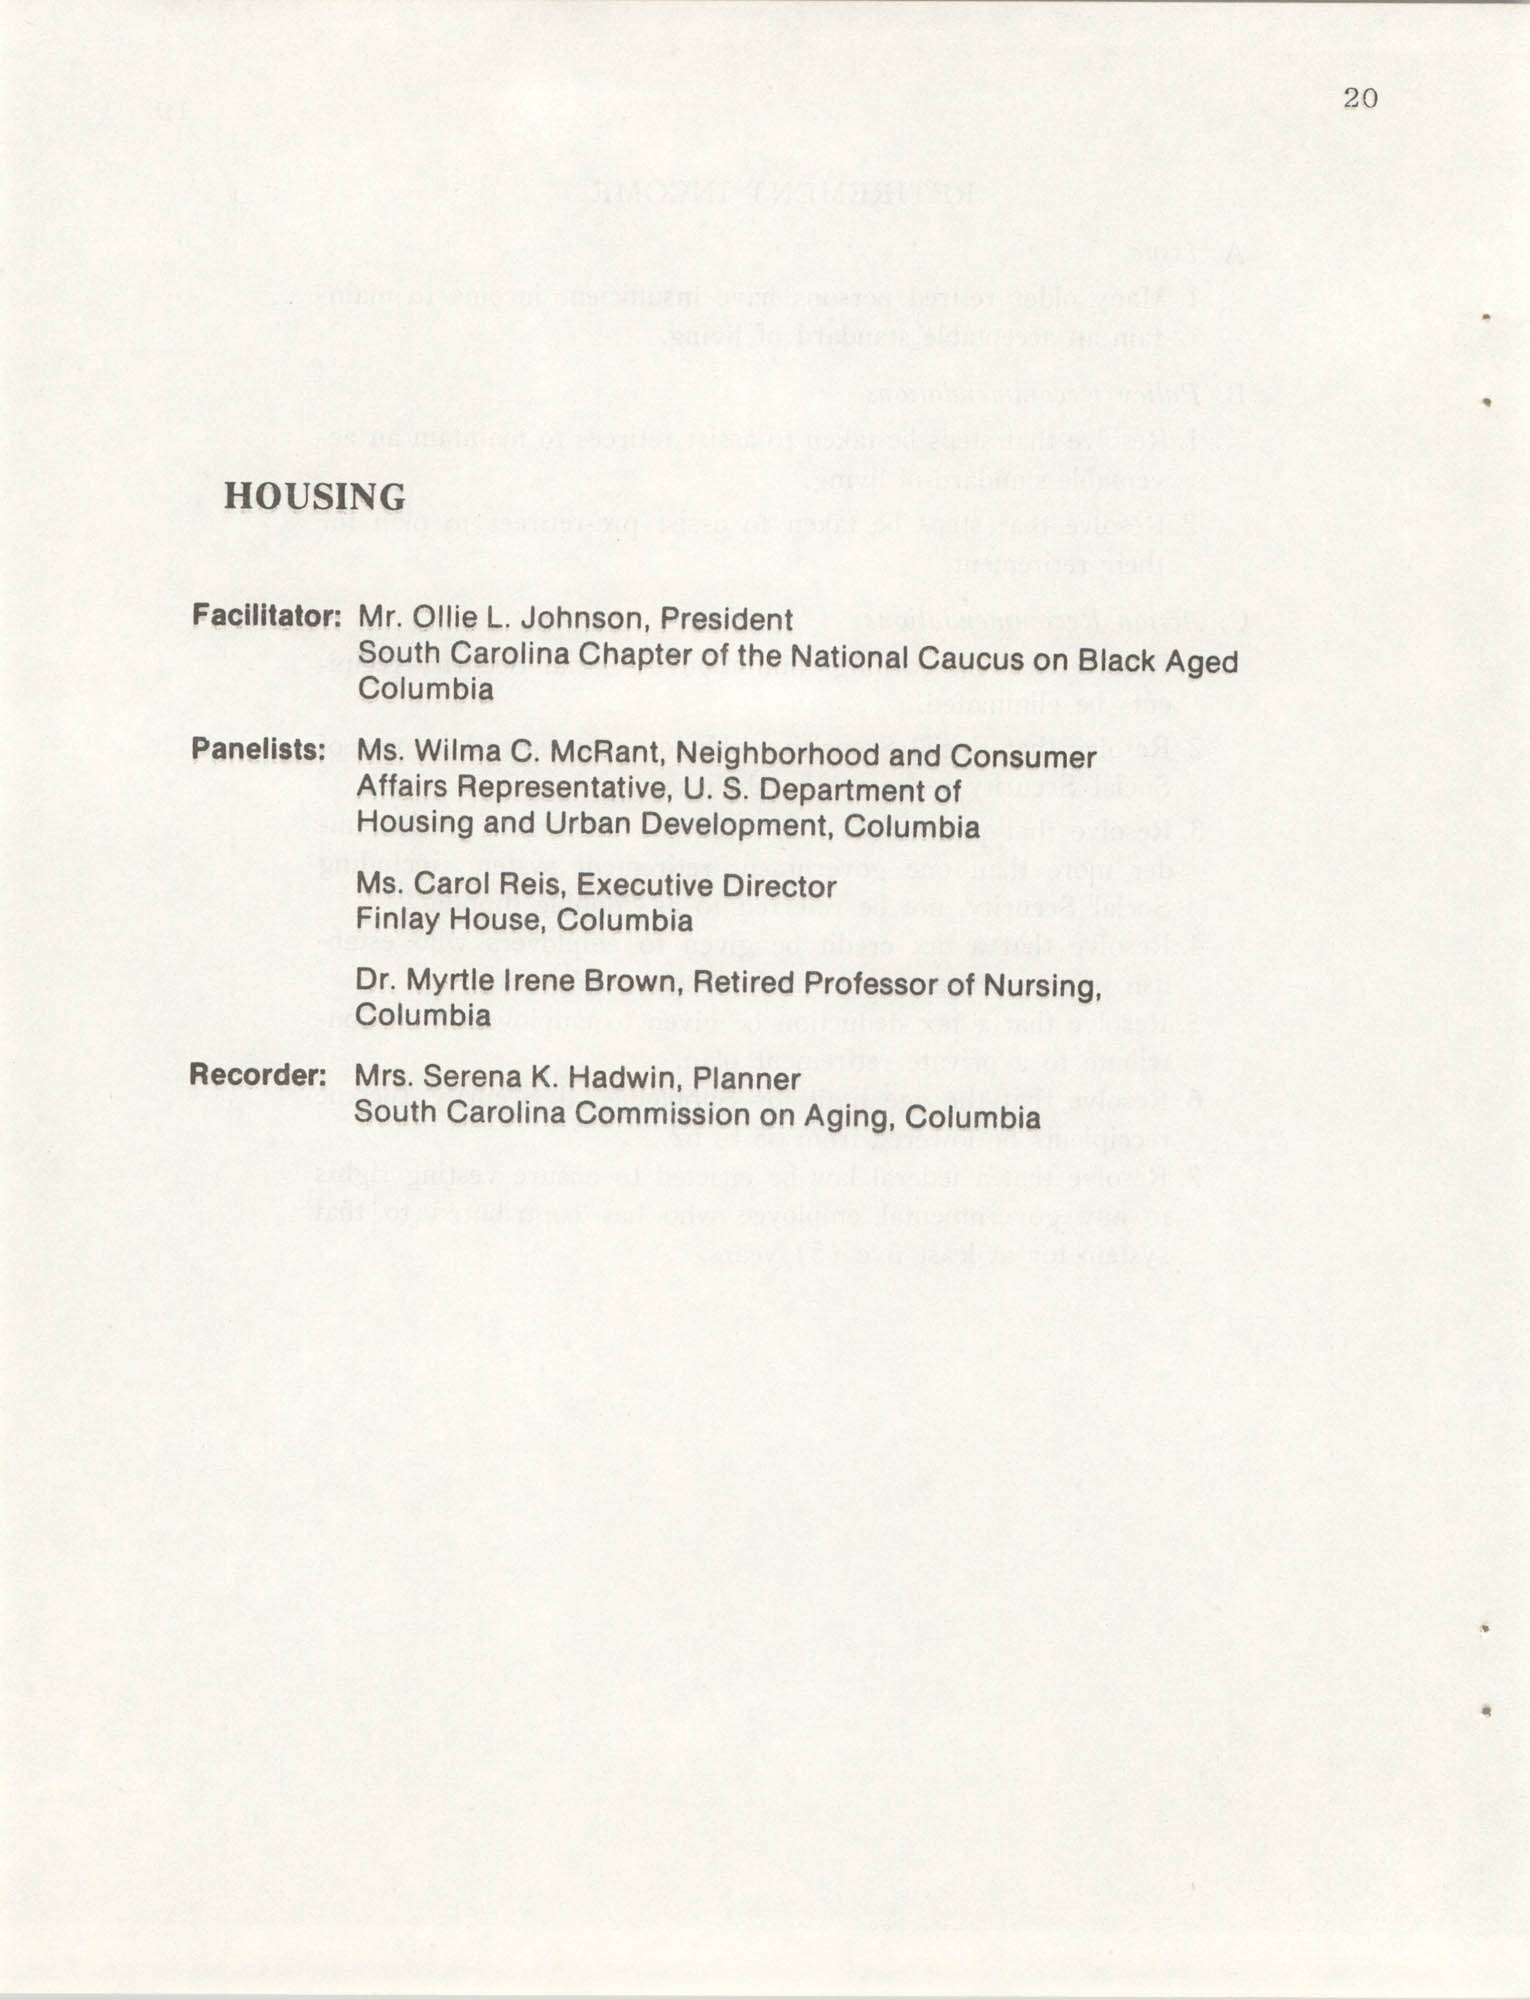 South Carolina Governor's White House Conference on Aging Proceedings, 1981, Page 20